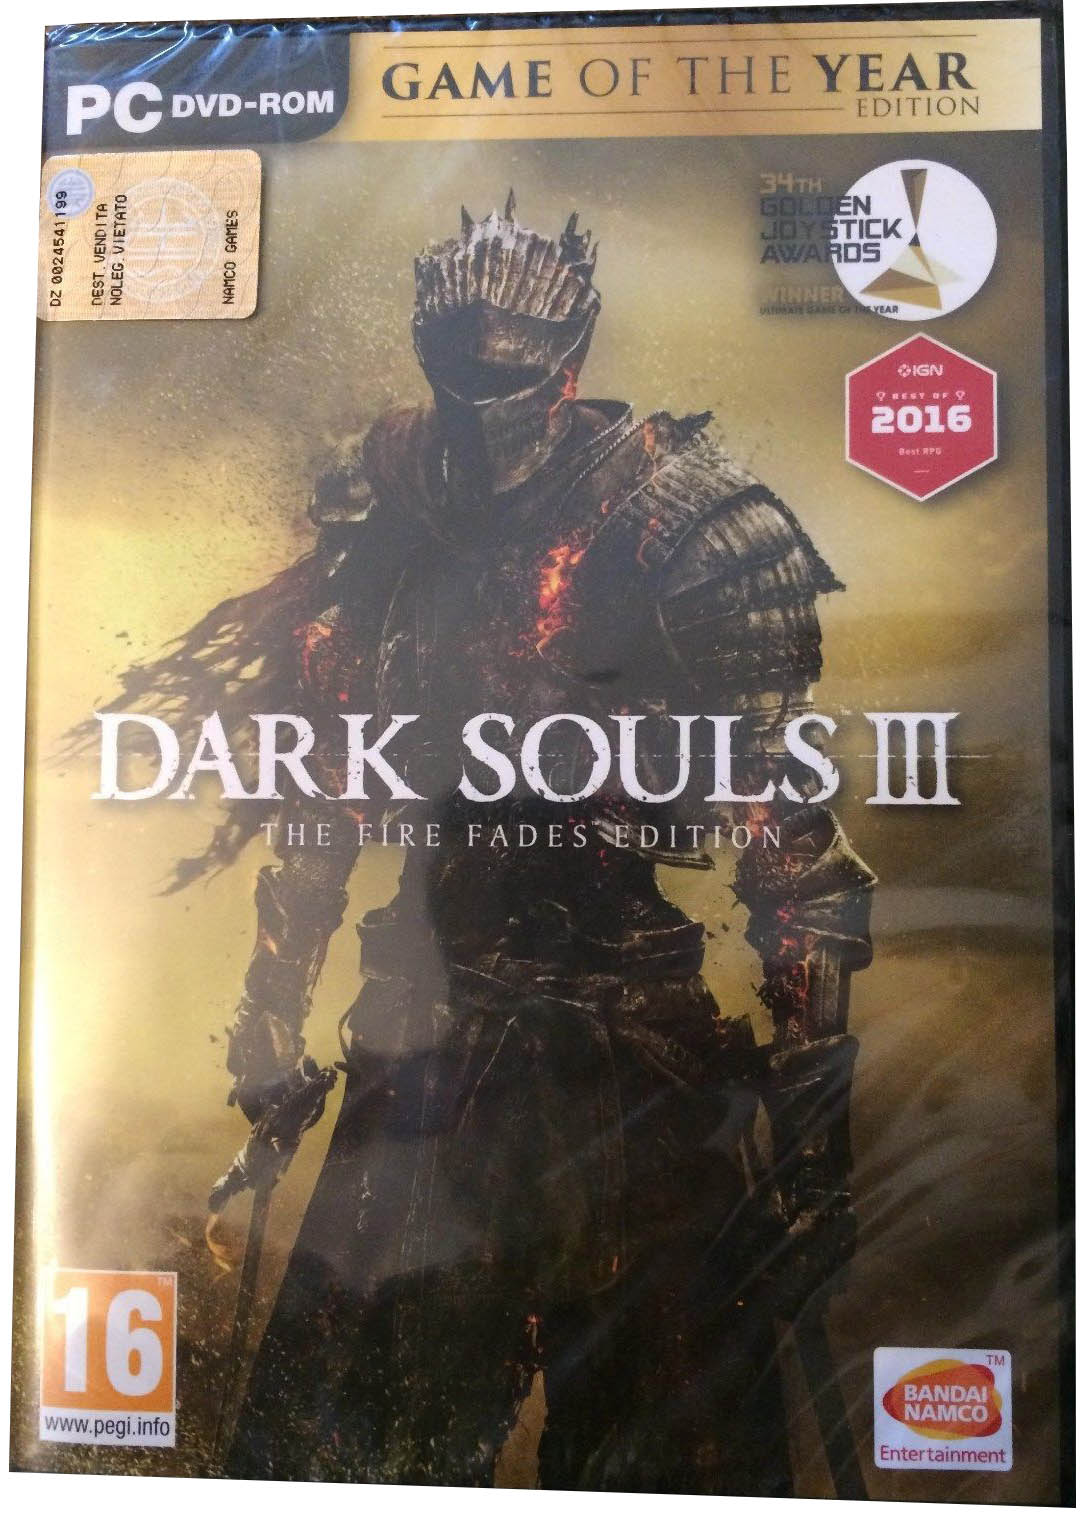 Dark Souls III: The Fire Fades Edition (Game of the Year Edition) PC издание в Европе